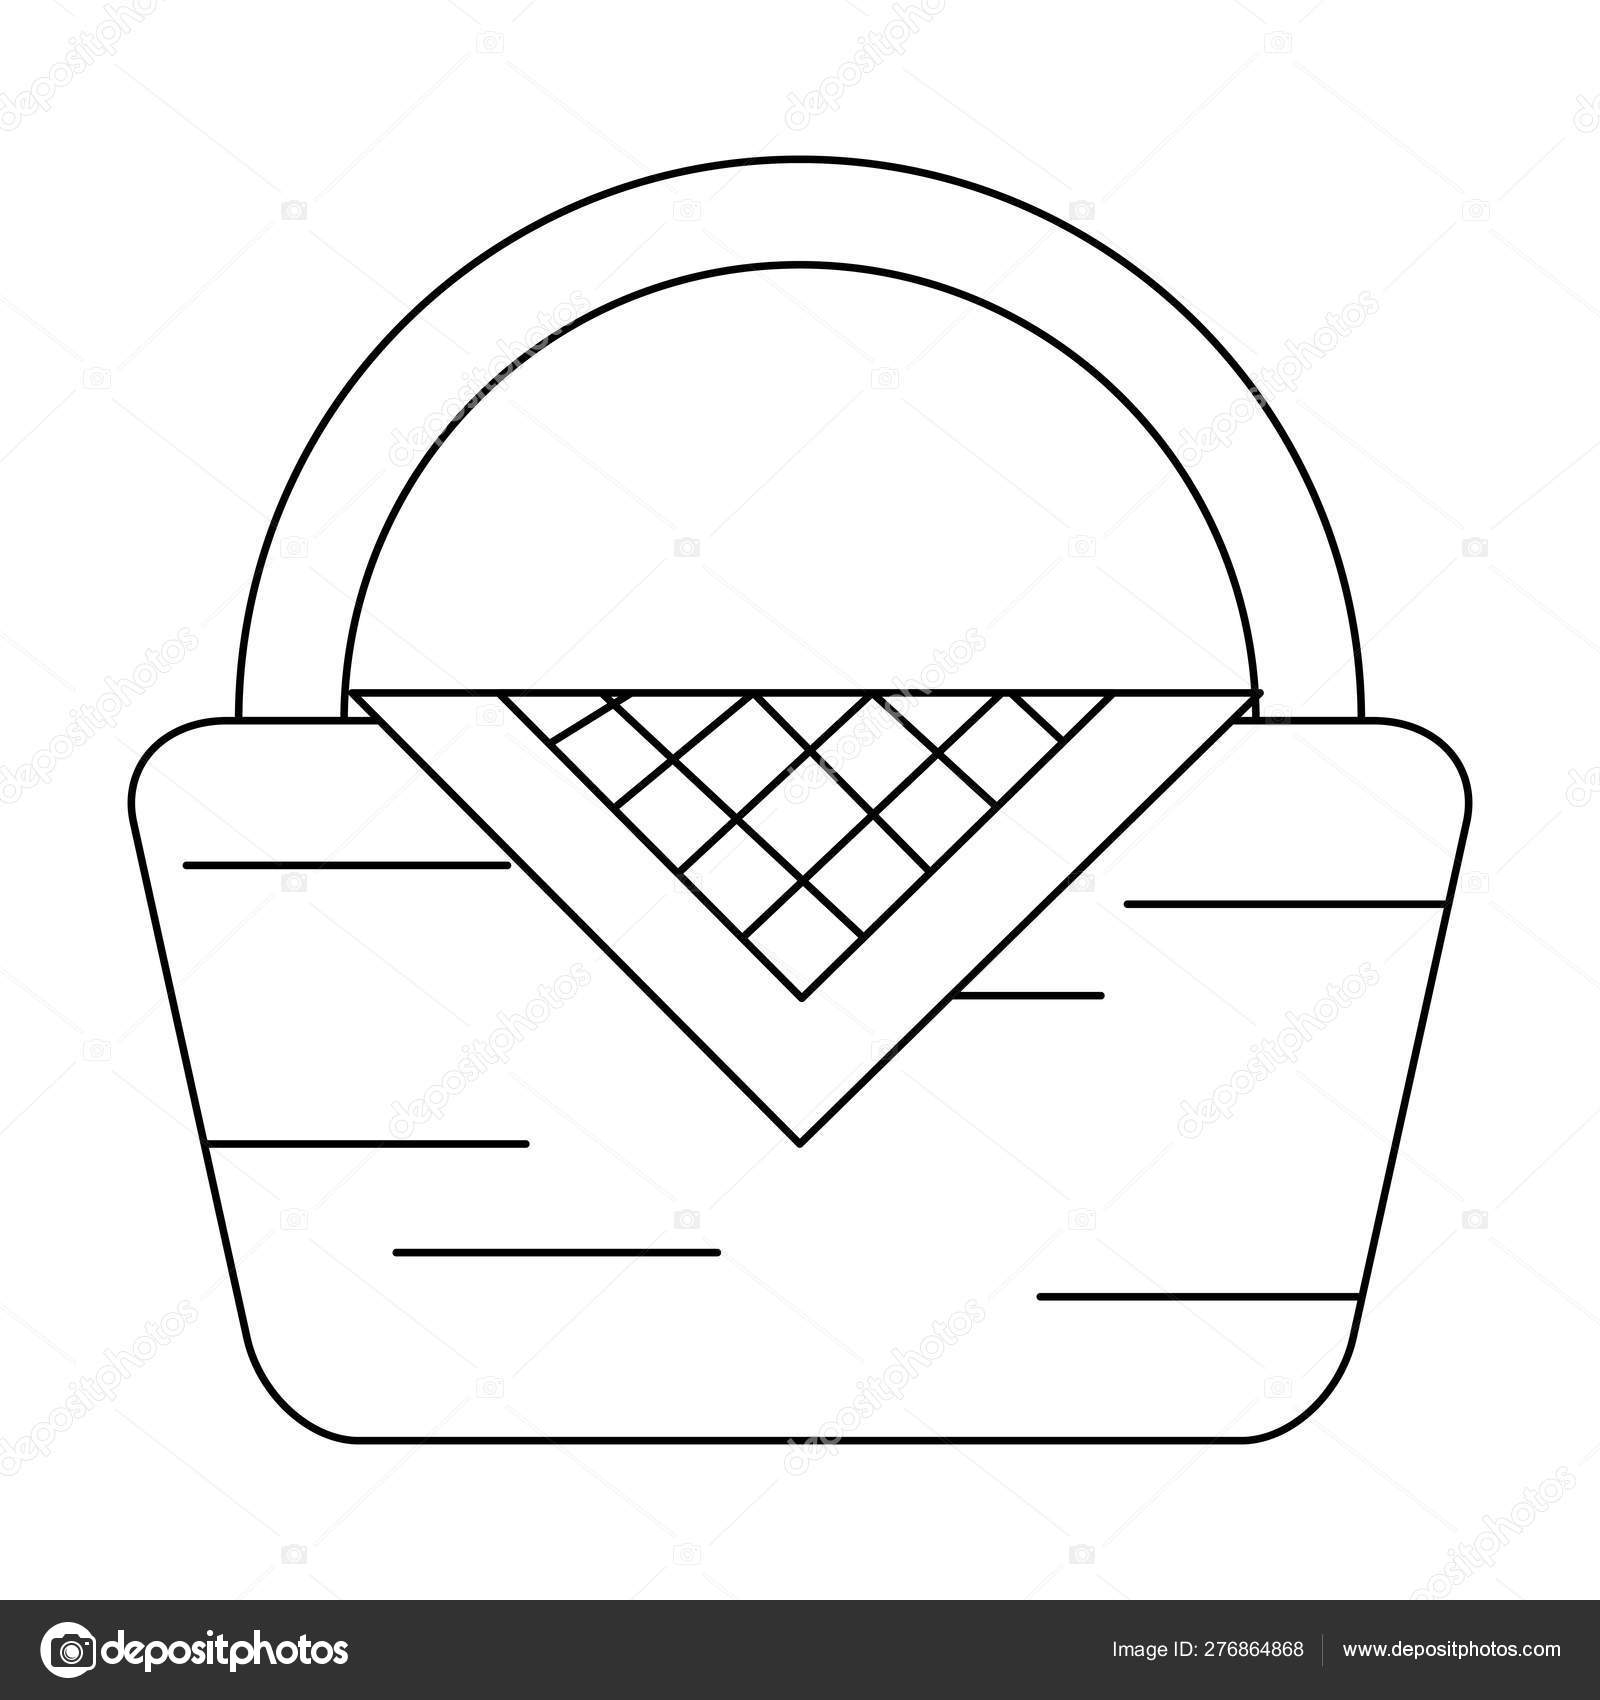 Picnic Basket Symbol Cartoon Black And White Vector Image By C Jemastock Vector Stock 276864868